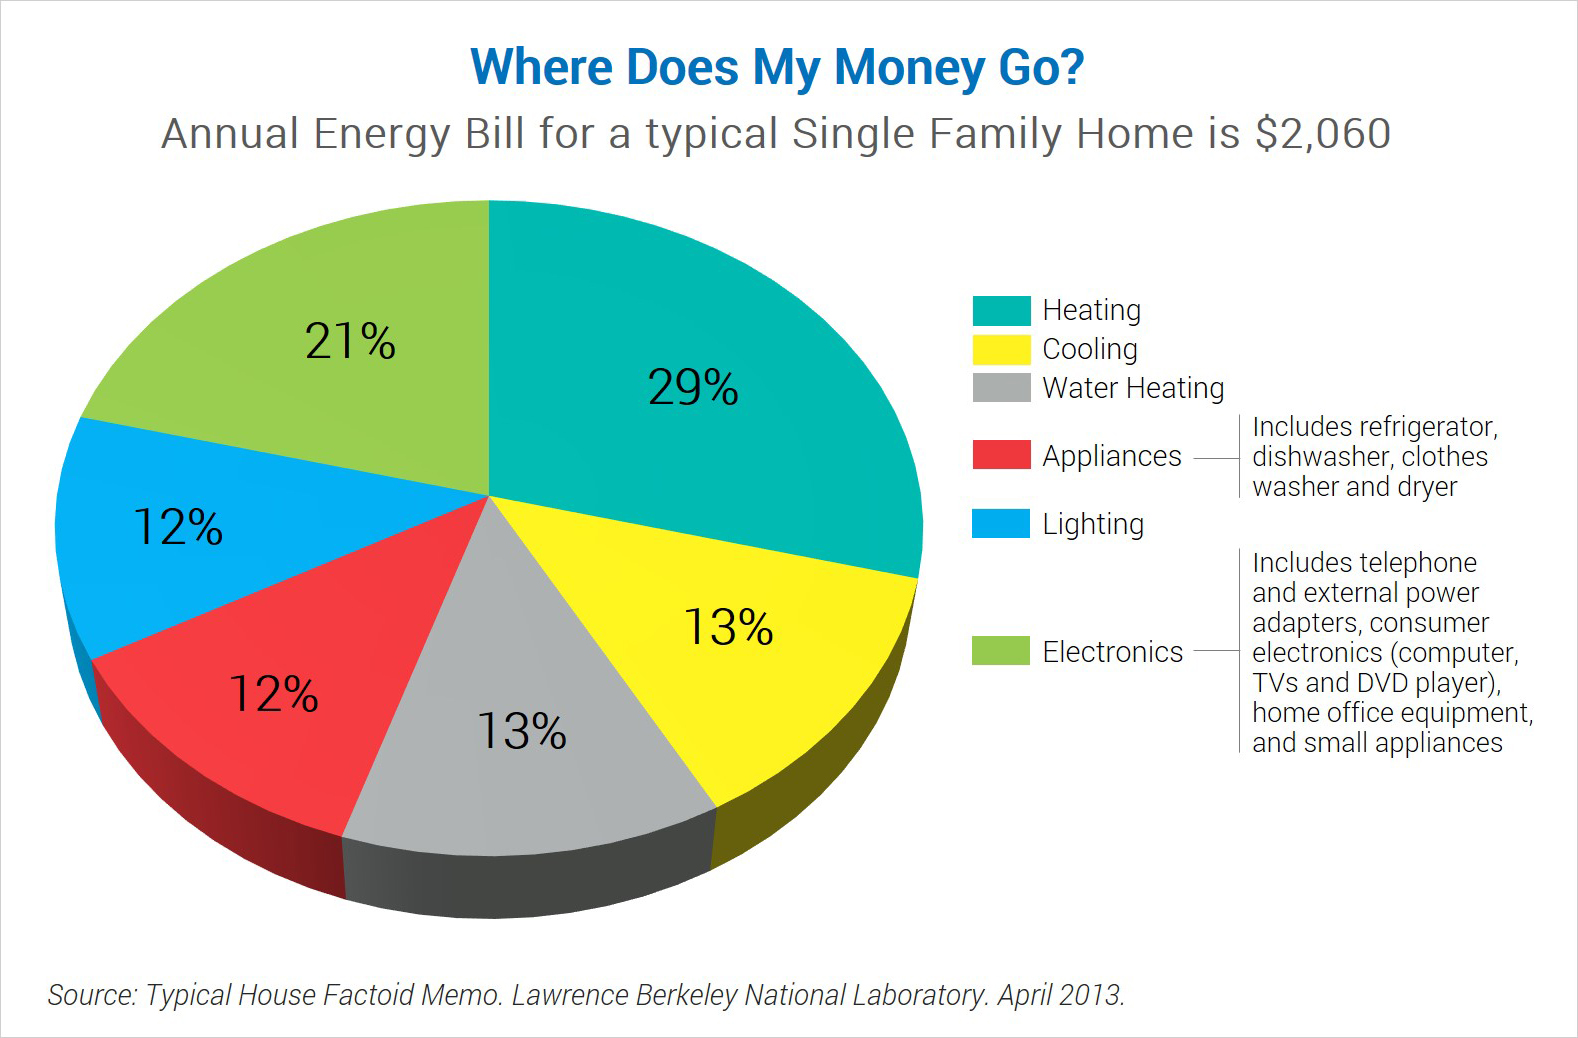 Typical House Energy Use  sc 1 st  Energy Star & Where Does My Money Go? | Products | ENERGY STAR azcodes.com